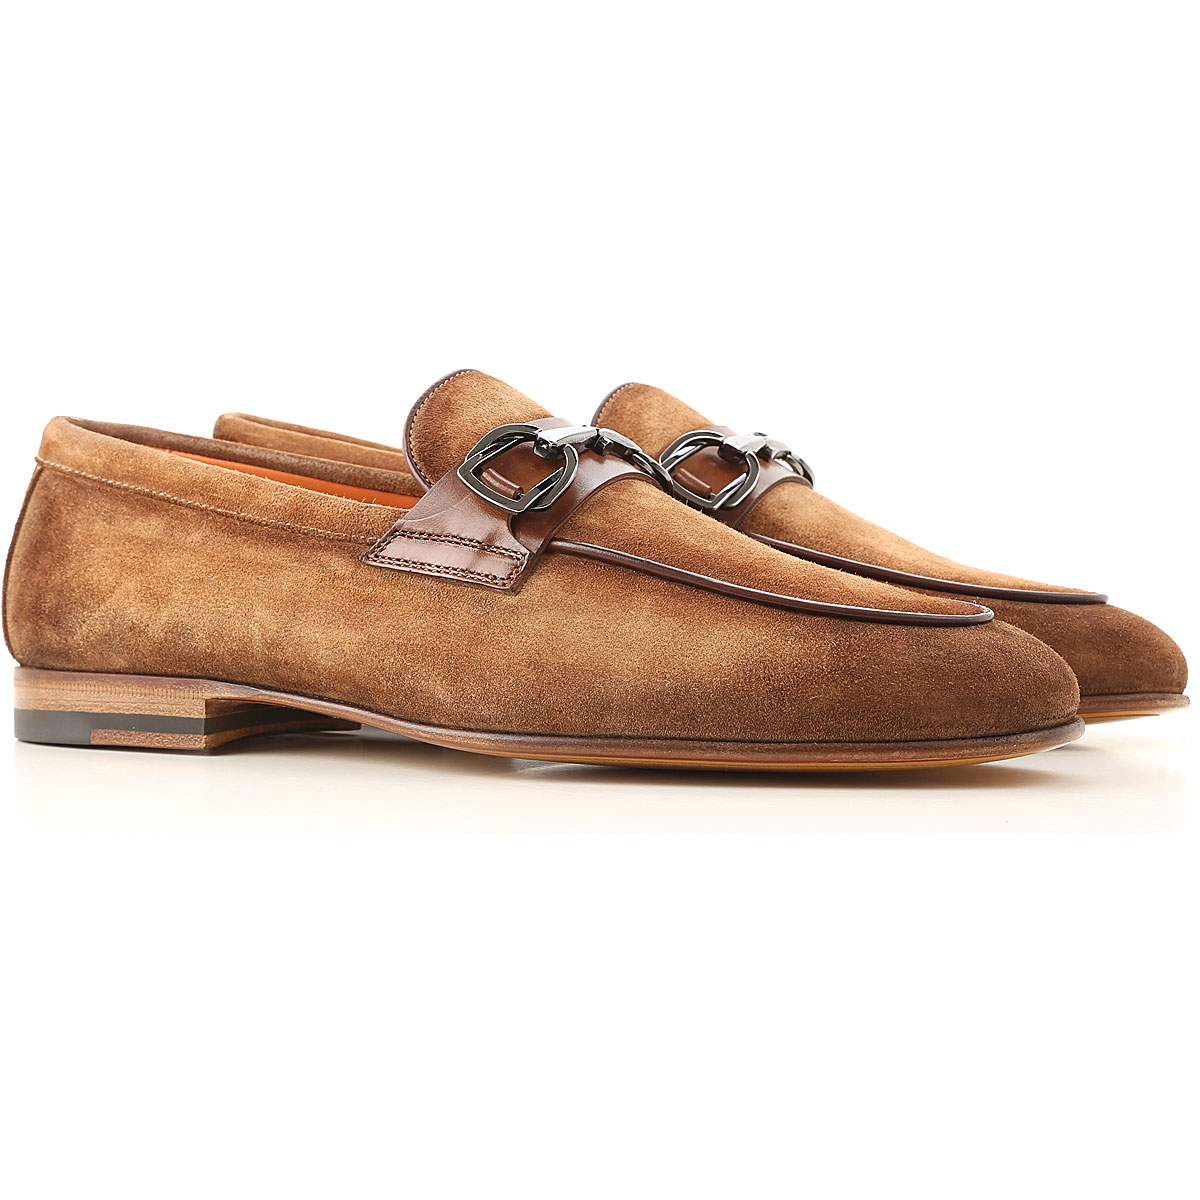 Santoni Loafers for Men On Sale, Brown, Suede leather, 2019, 10 10.5 11 6 7.5 8 8.5 9 9.5